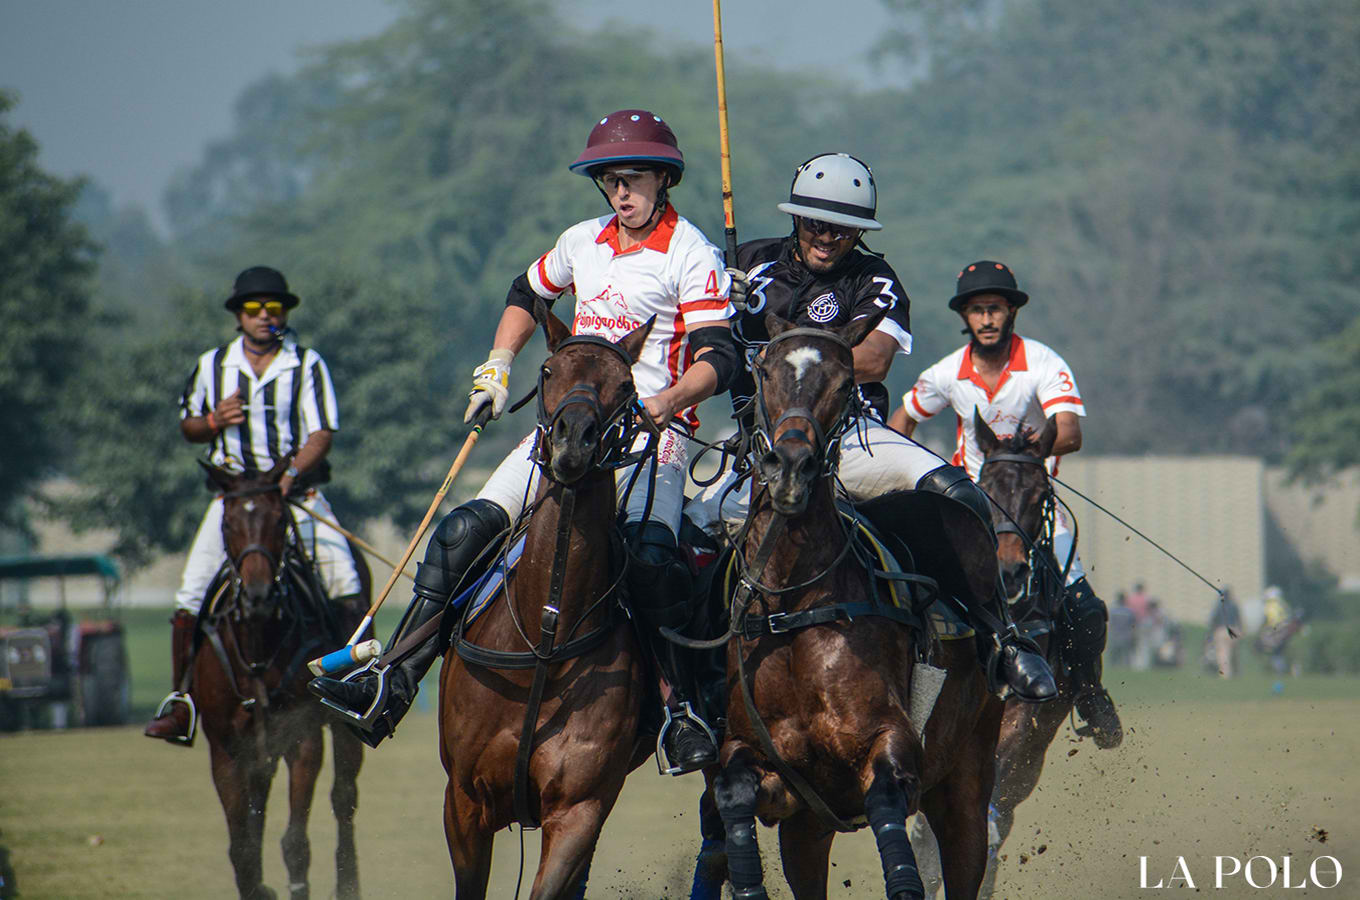 sona polo delhi polo season 2018